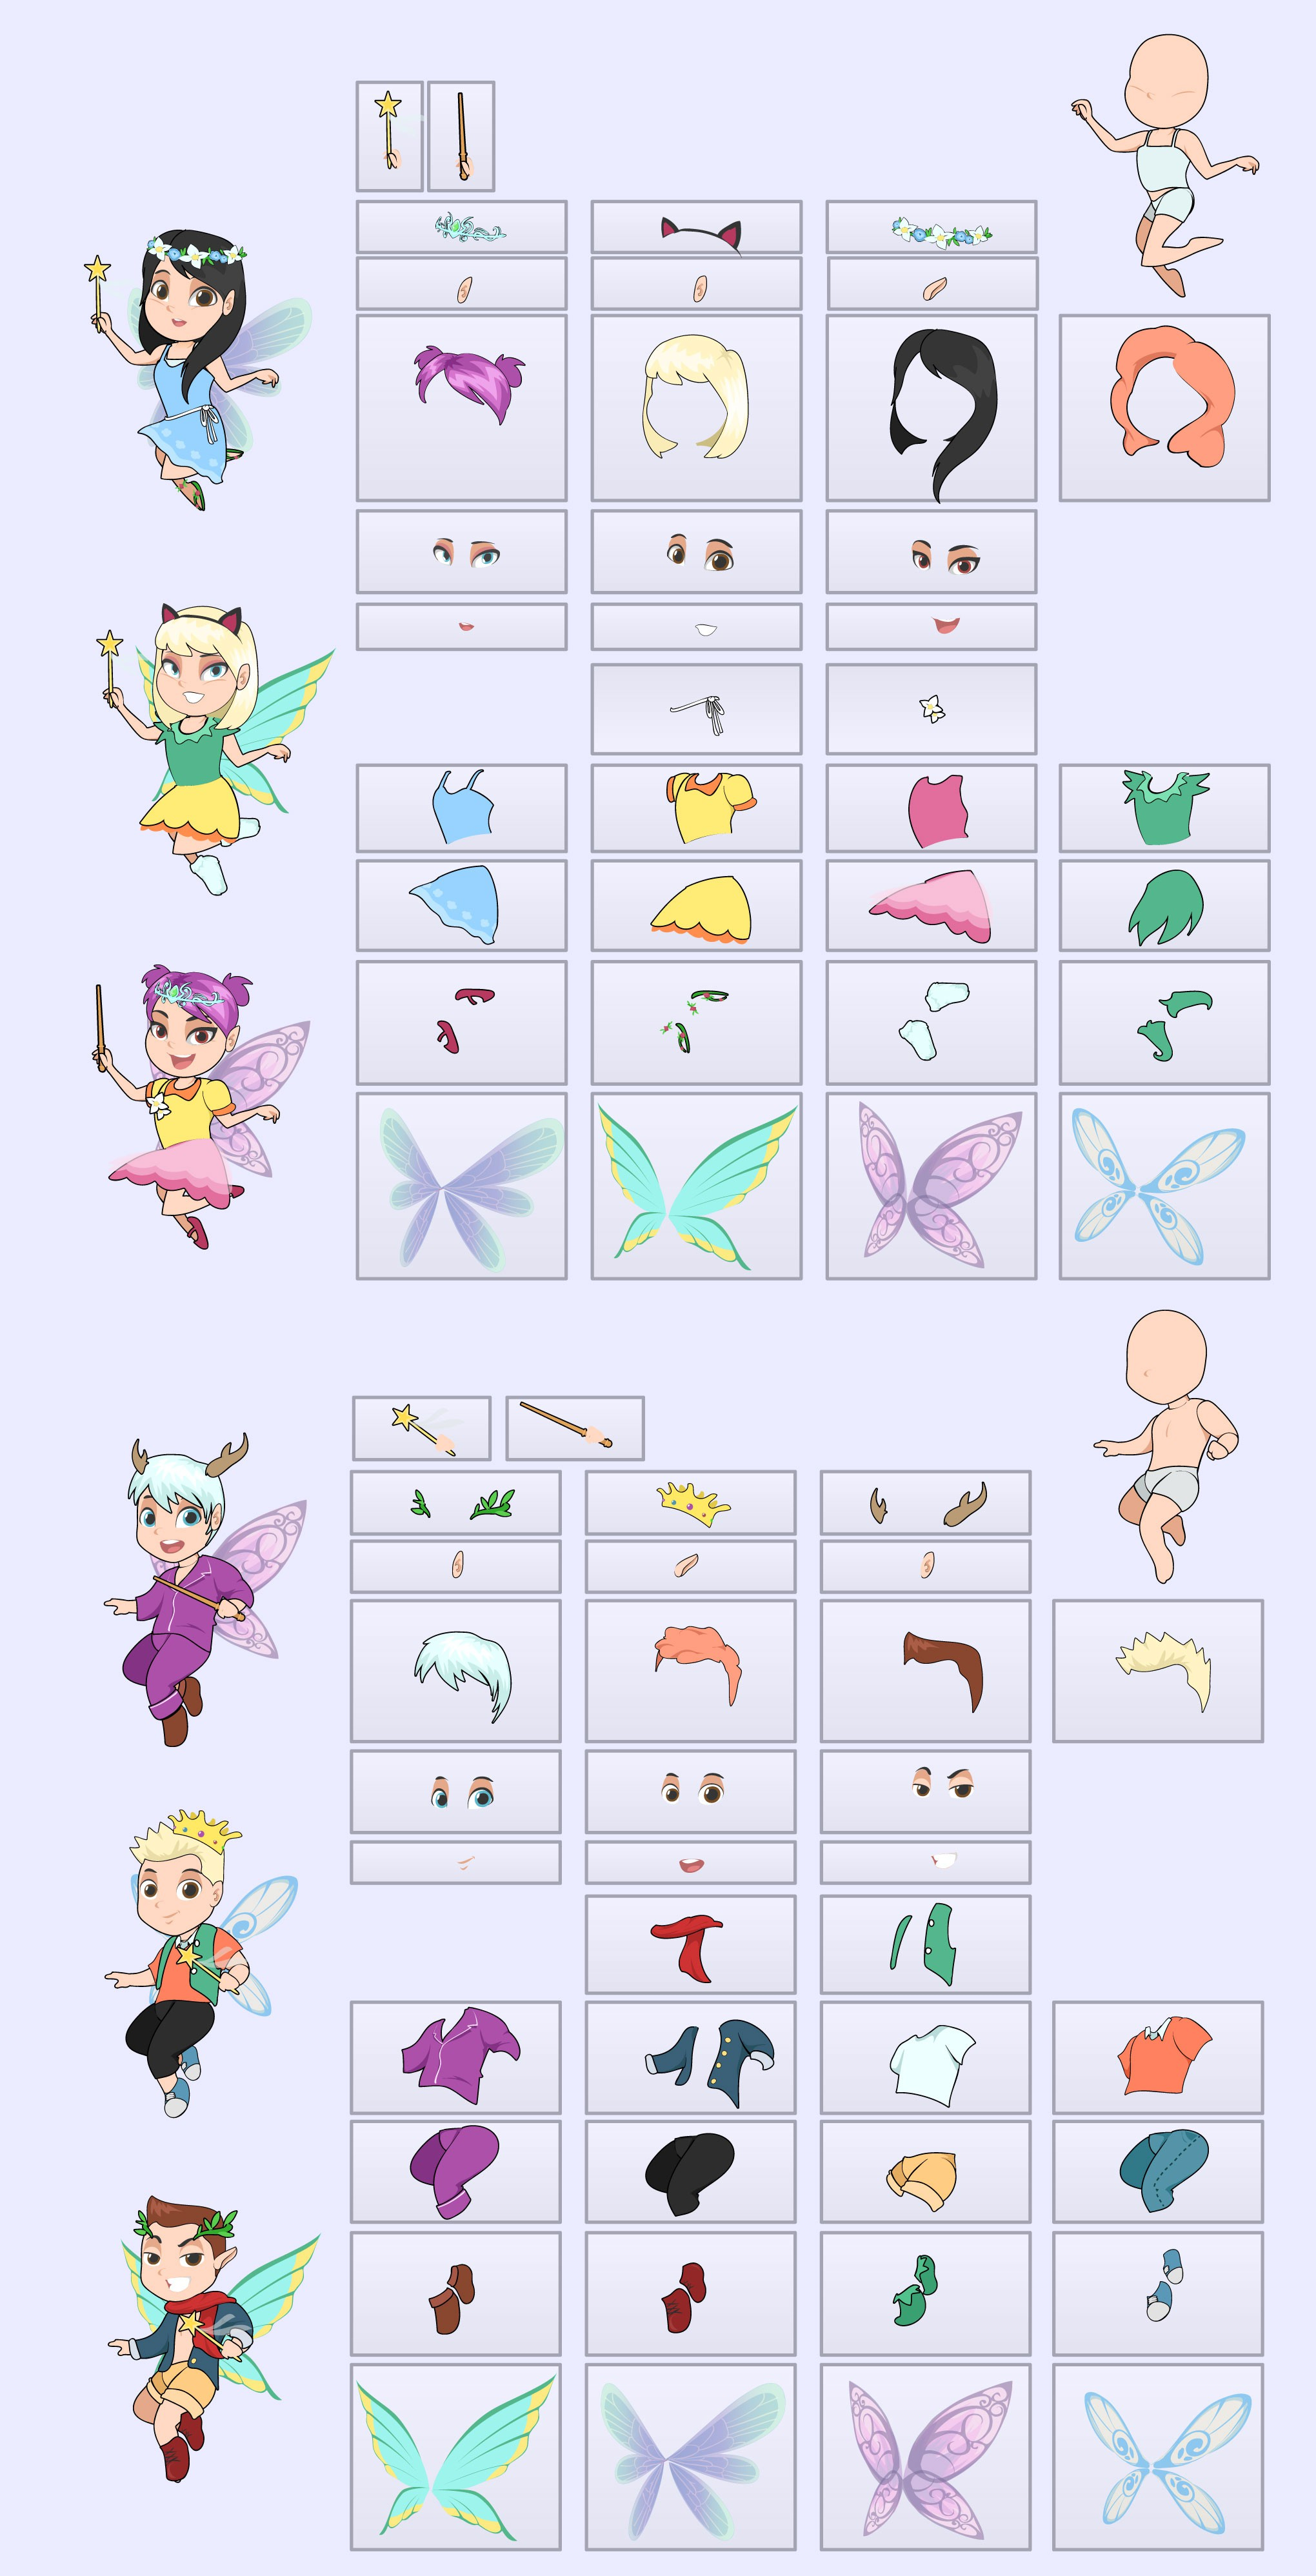 Design and provide inspiration for the Fairy Characters to feature Children's entertainment portal